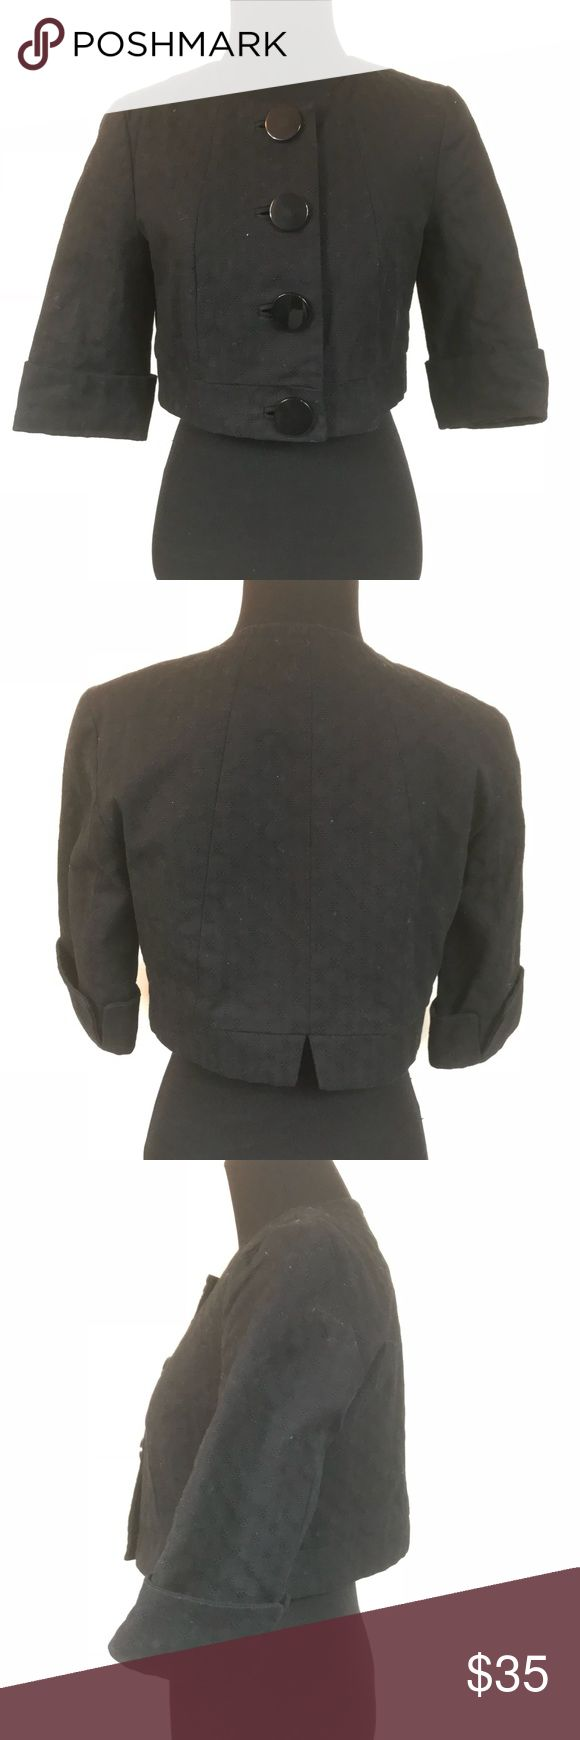 FRENCH CONNECTION BLACK BUTTON CROP JACKET SIZE 8 Good condition French connection black cropped big button jacket size 8 French Connection Jackets & Coats